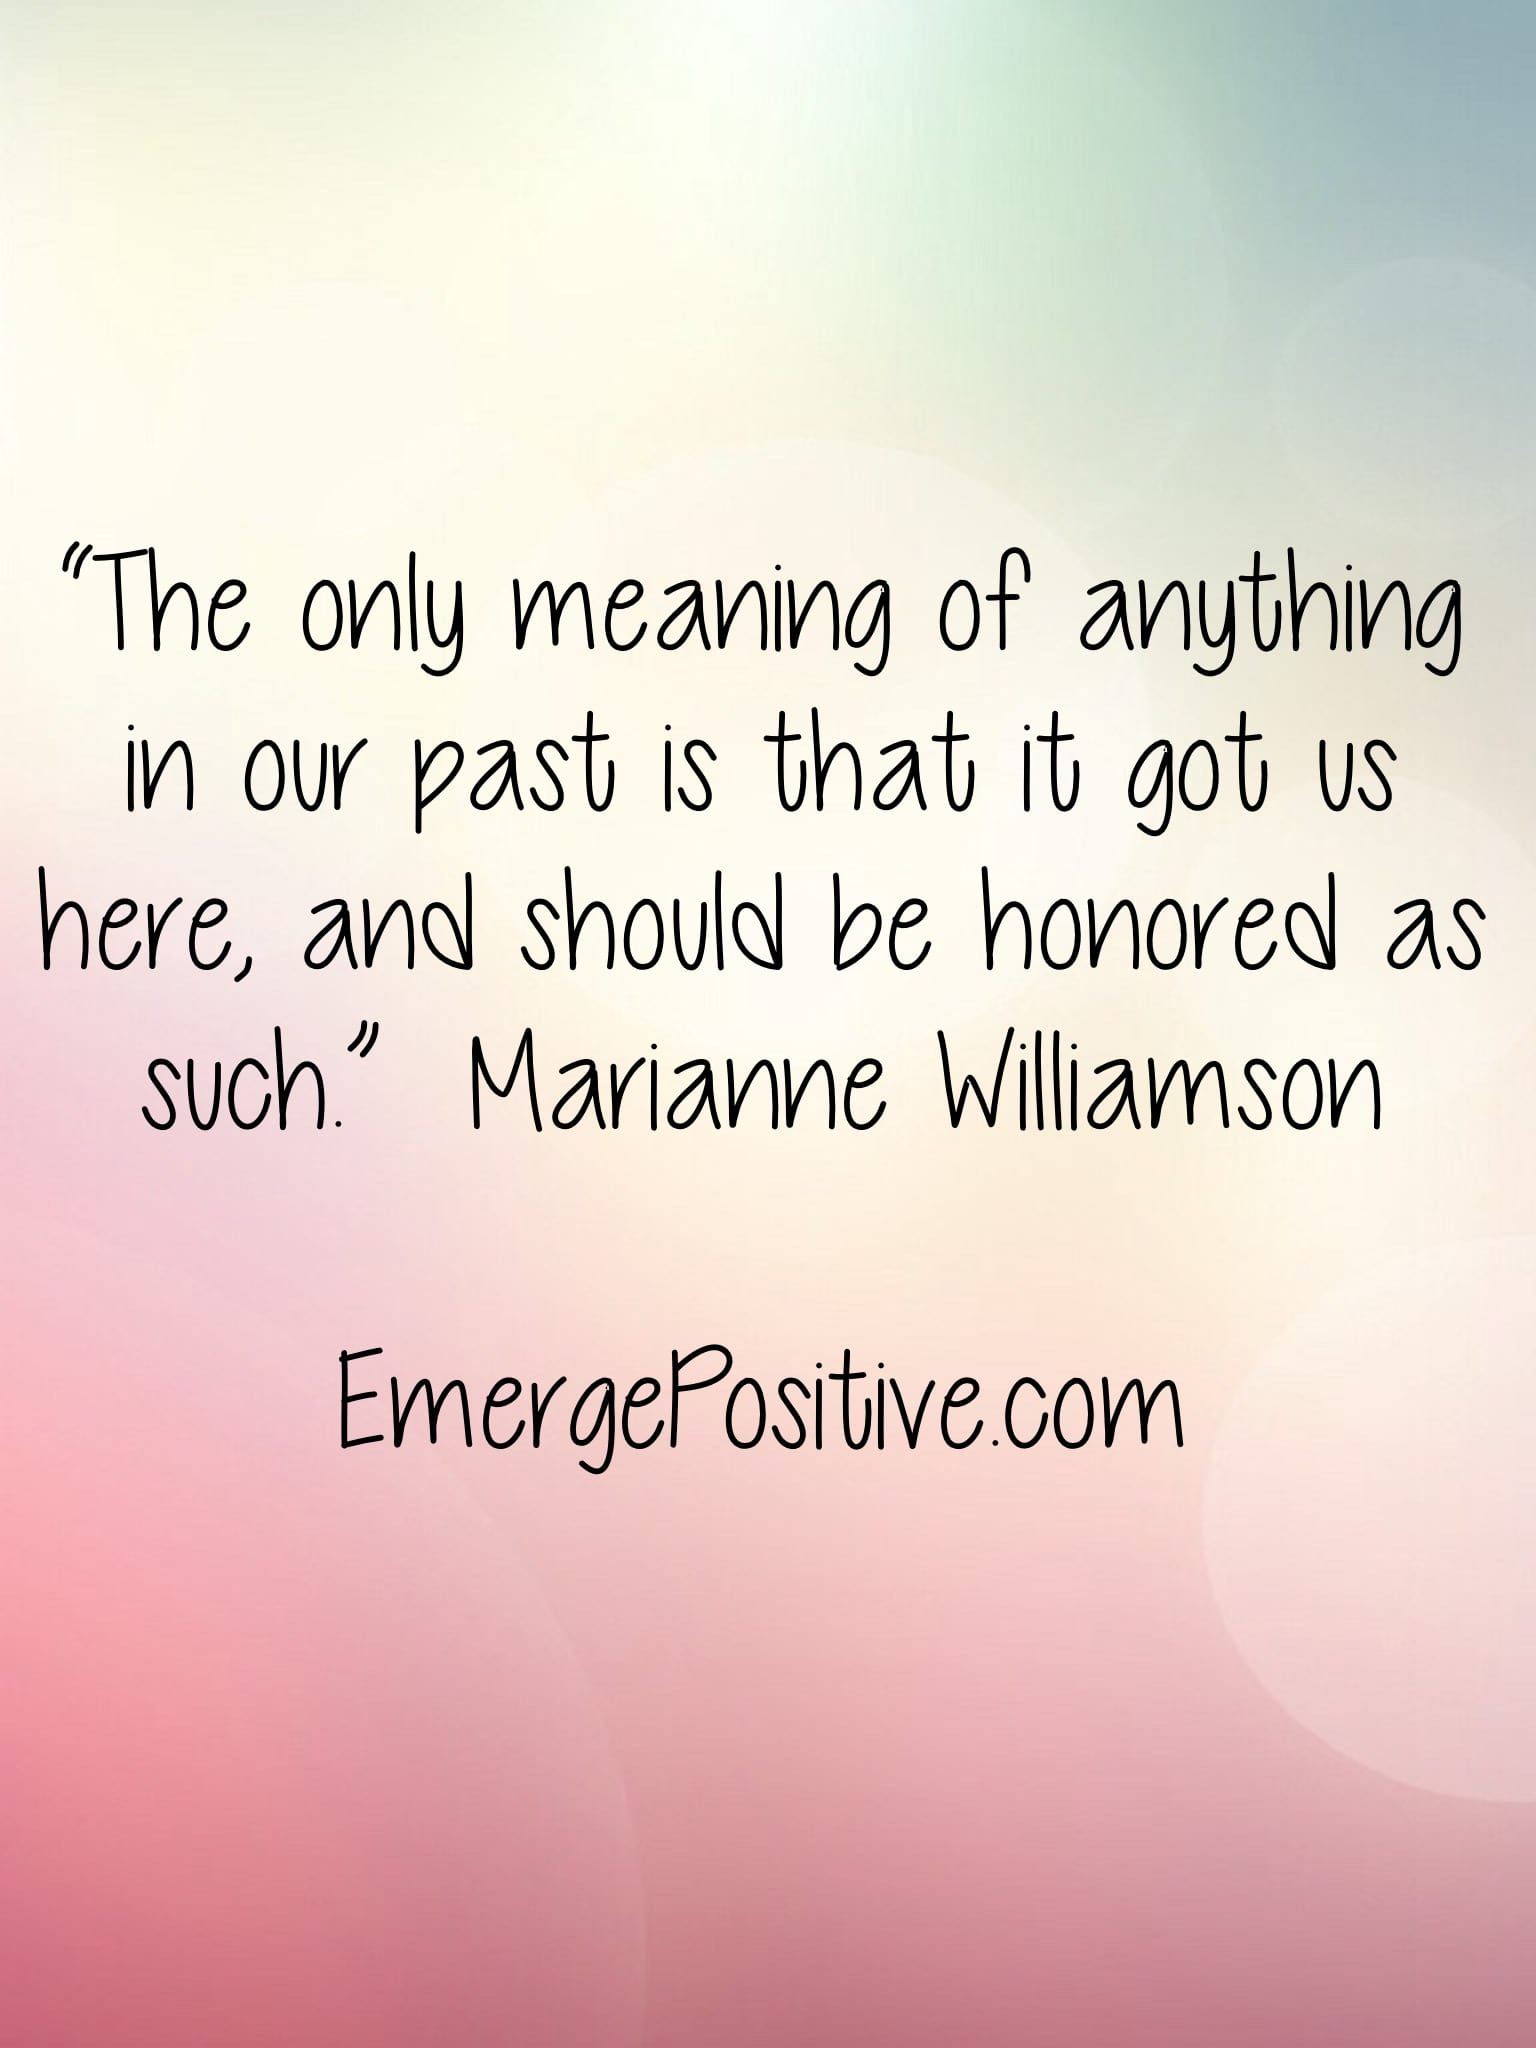 Here's the reason to stop living in the past  - Emerge Positive®